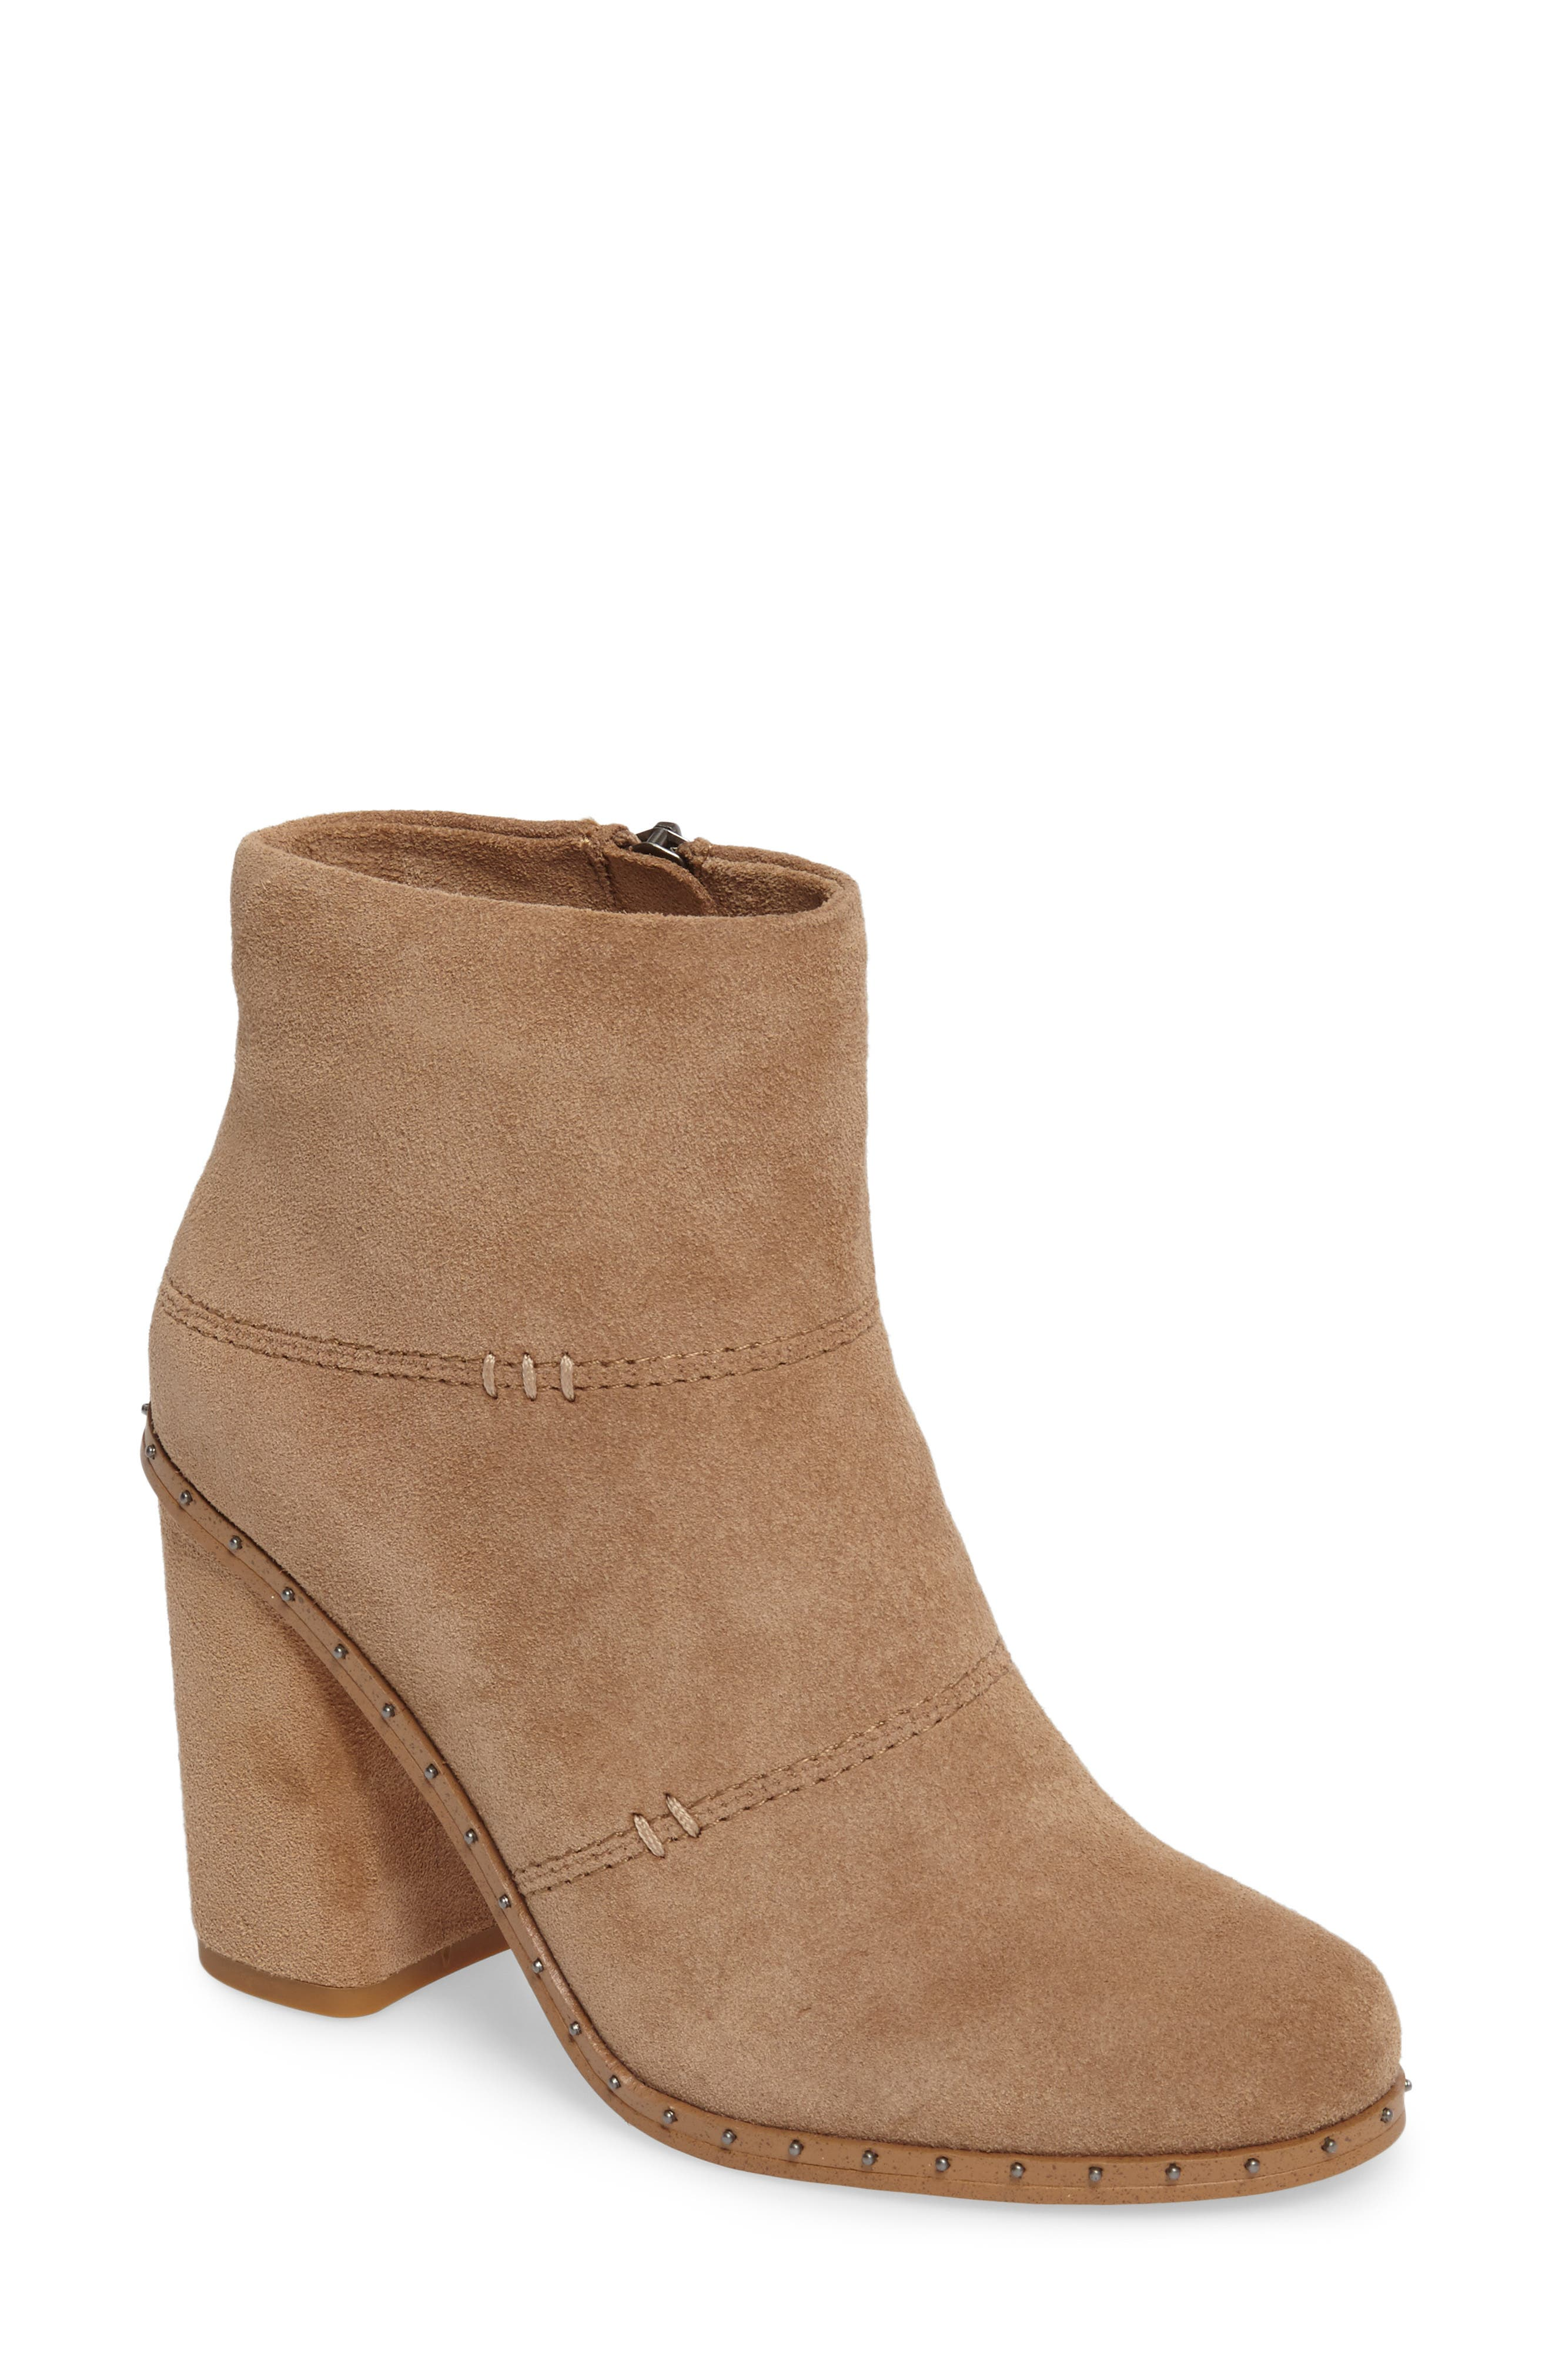 Rita Bootie,                             Main thumbnail 1, color,                             Light Taupe Suede